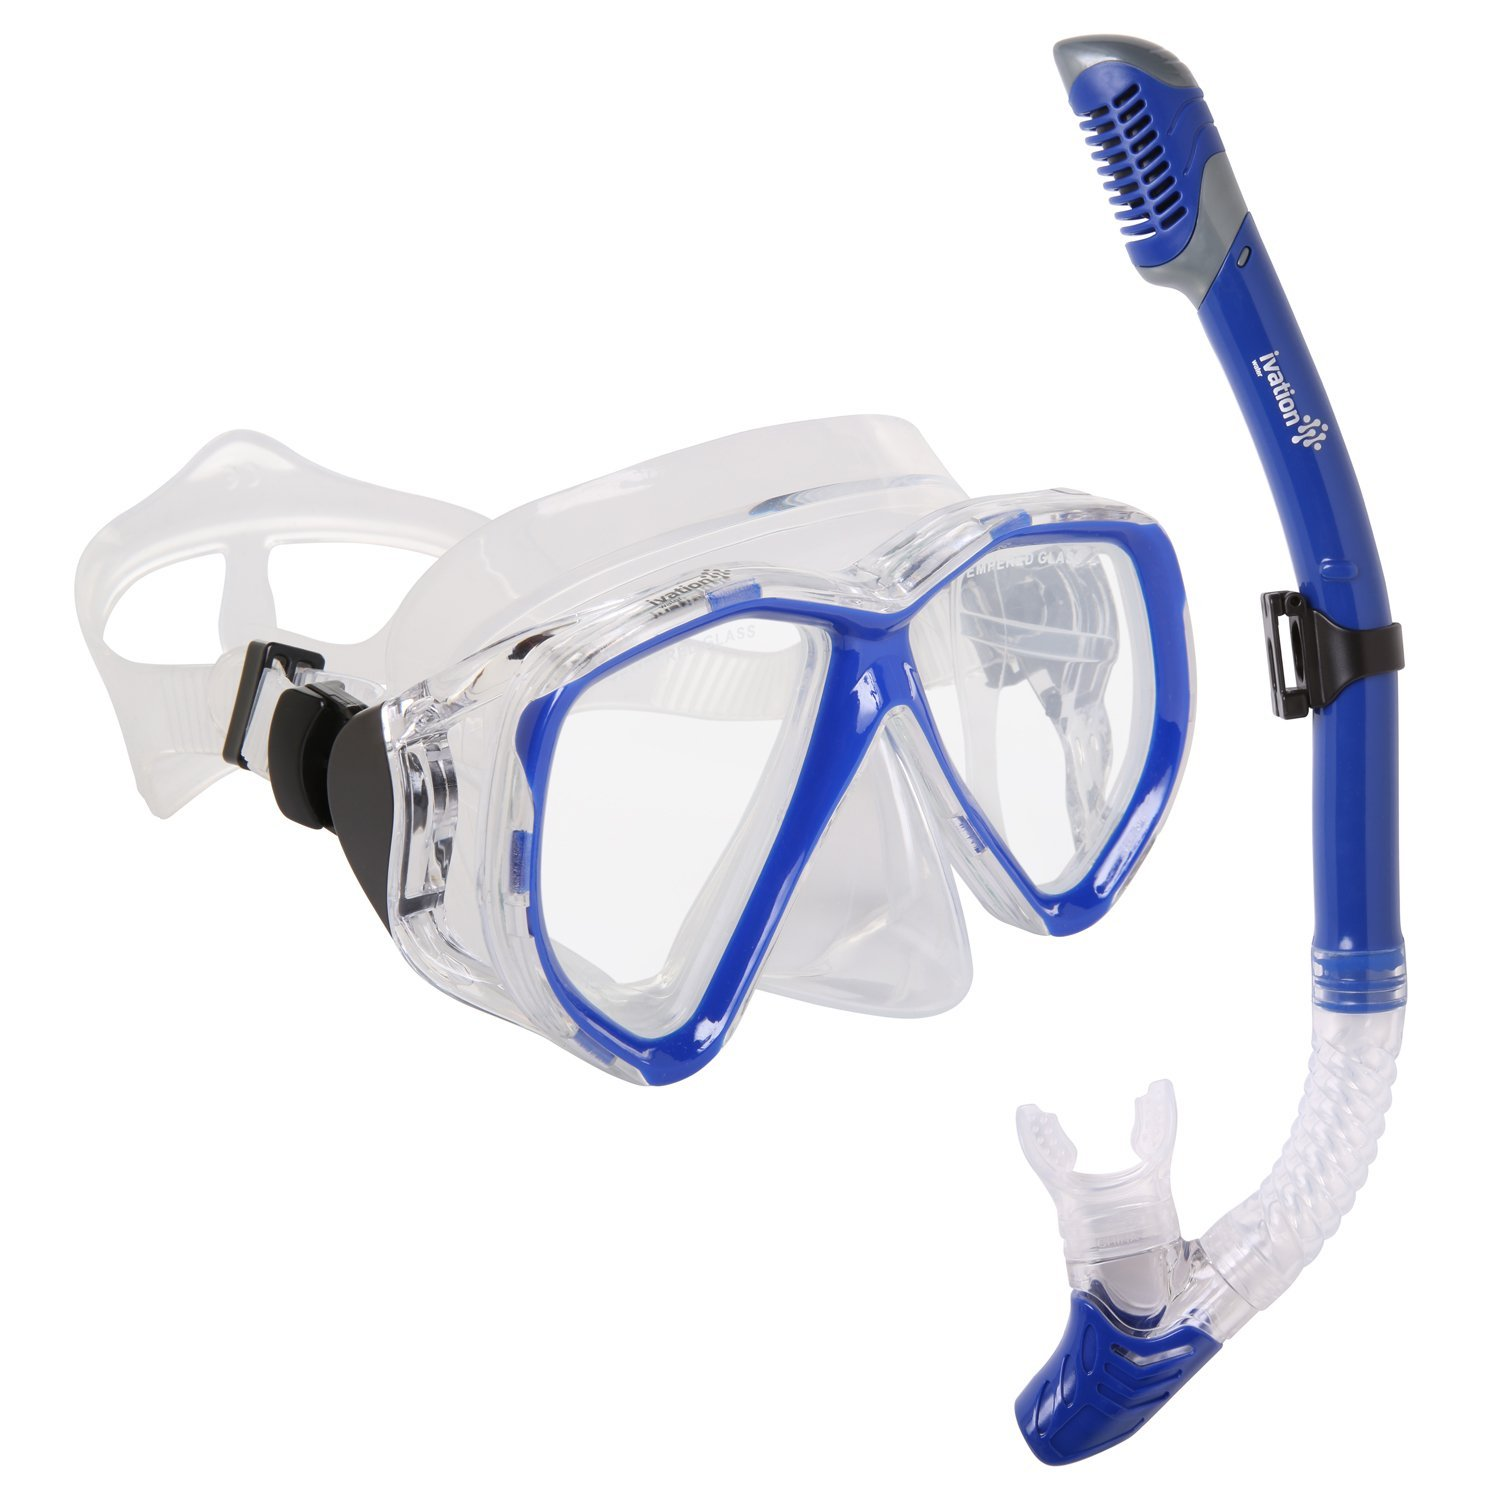 Snorkel Mask Set Adult Snorkeling Gear Double Lens Diving Mask & Snorkel w  Dry Top, Lower Purge Valve by Ivation